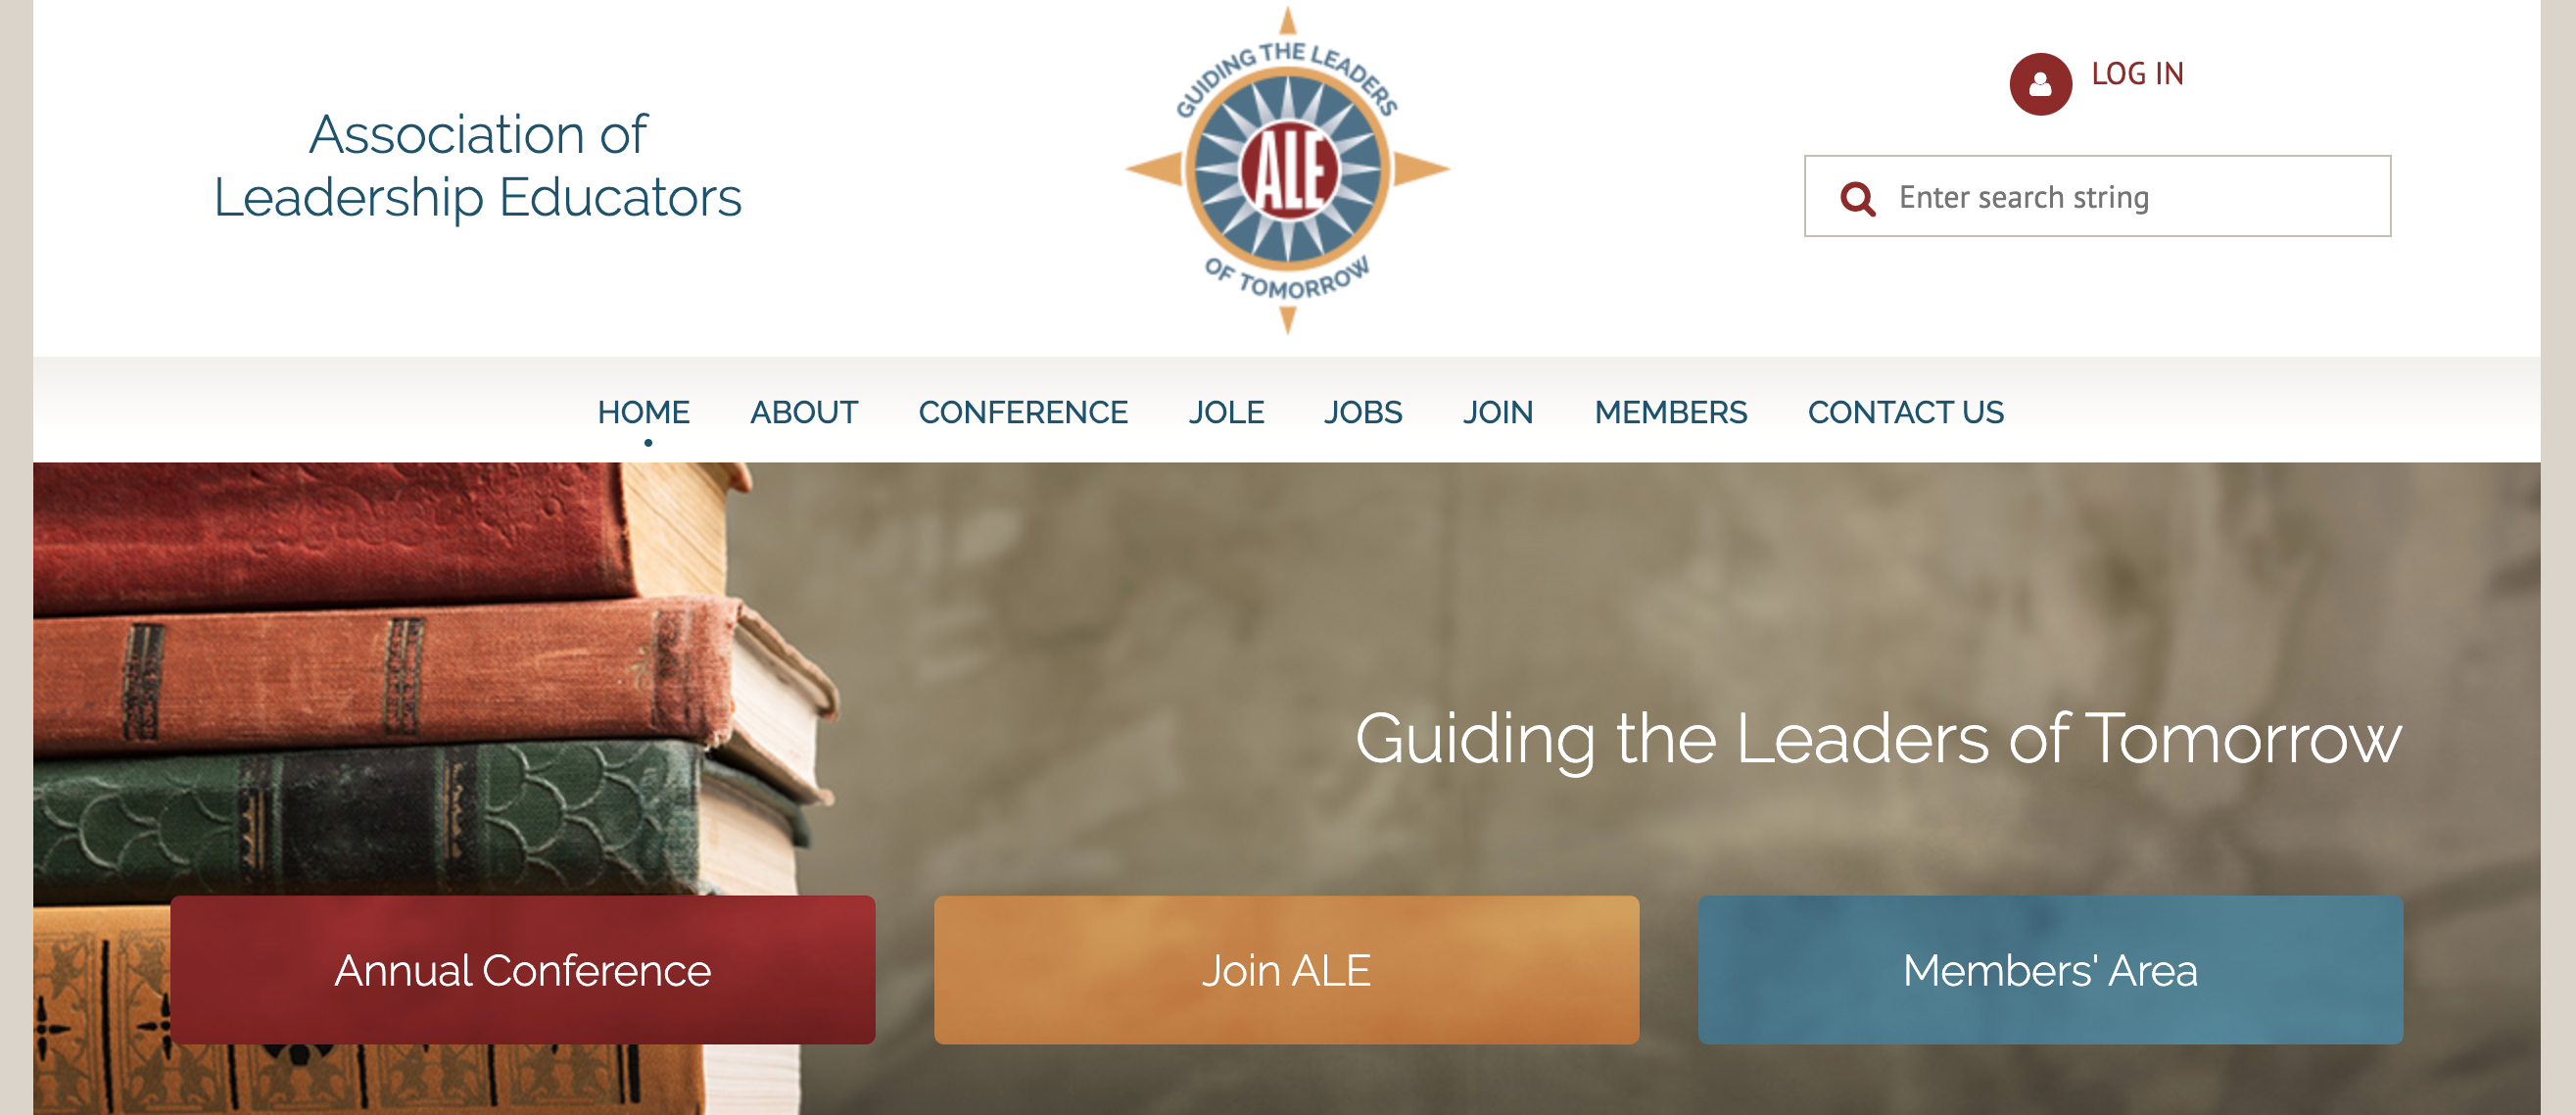 association of leadership educators website